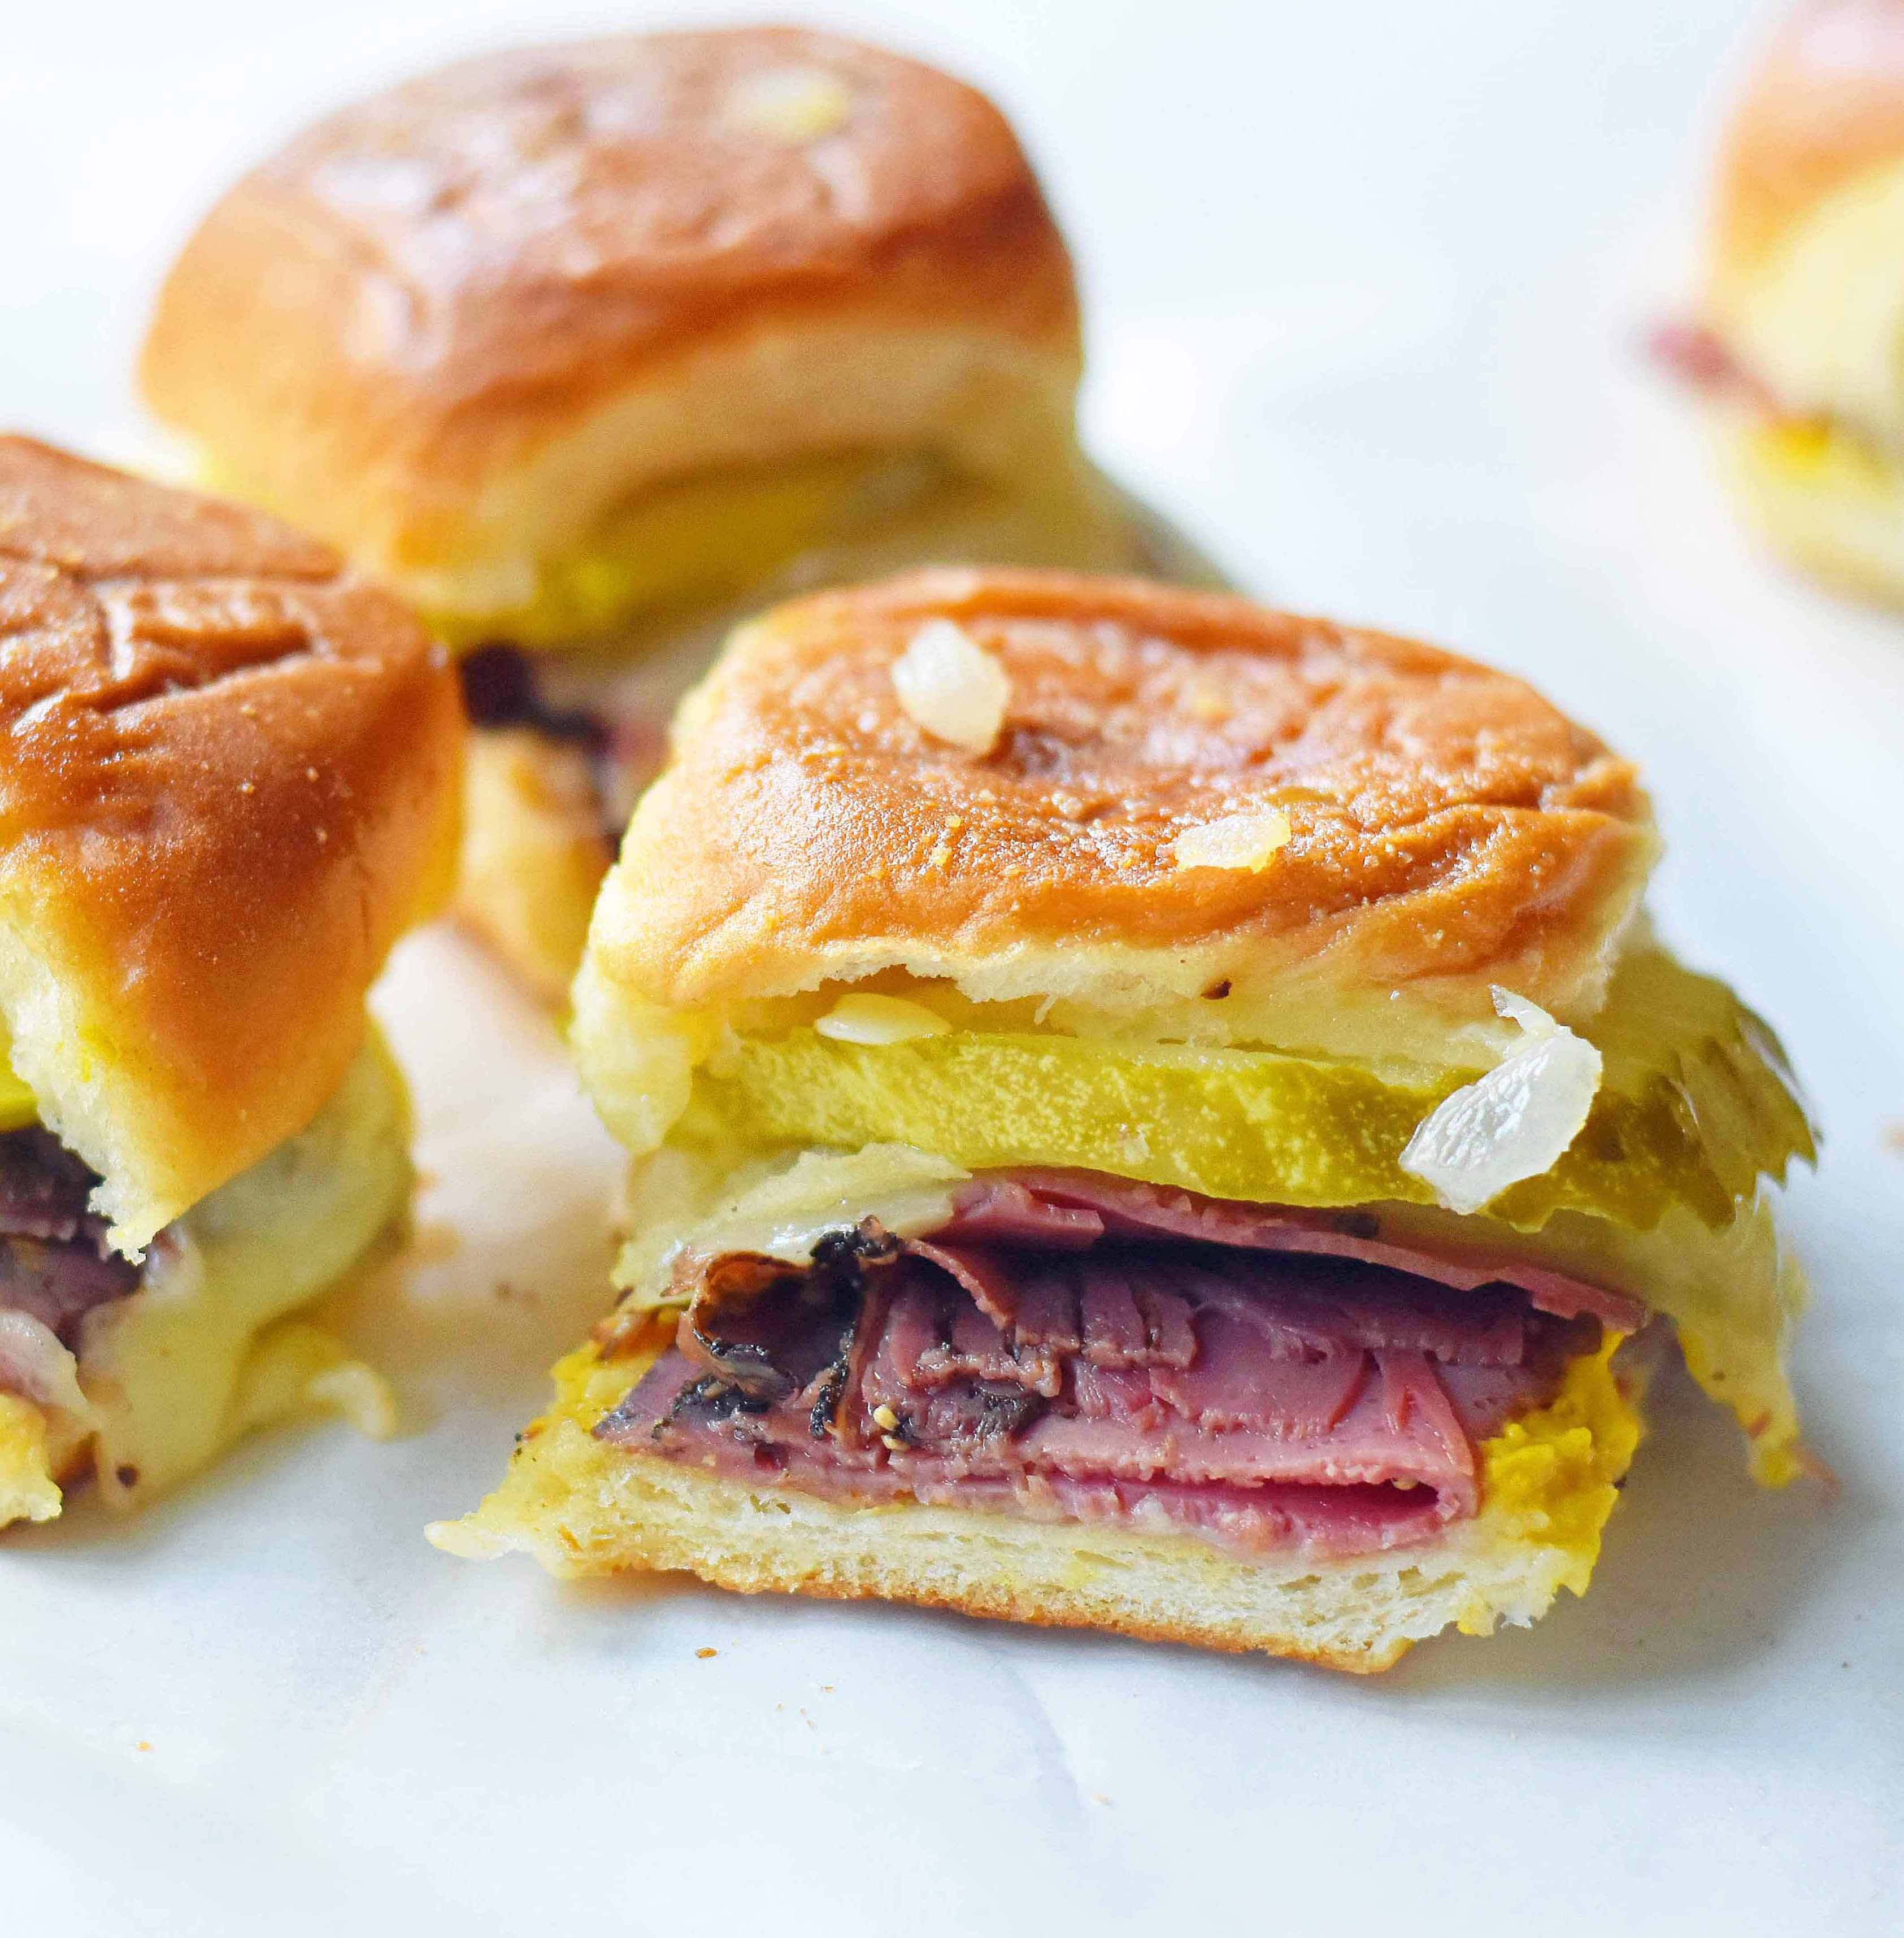 Hot Pastrami and Swiss Tailgate Sliders. Pastrami, creamy swiss, tangy mustard all on a hawaiian roll basted with garlic butter and baked until warm and toasty. A flavorful hot pastrami sandwich that is so easy! Perfect for entertaining, watching a football game, or a dinner at home. www.modernhoney.com